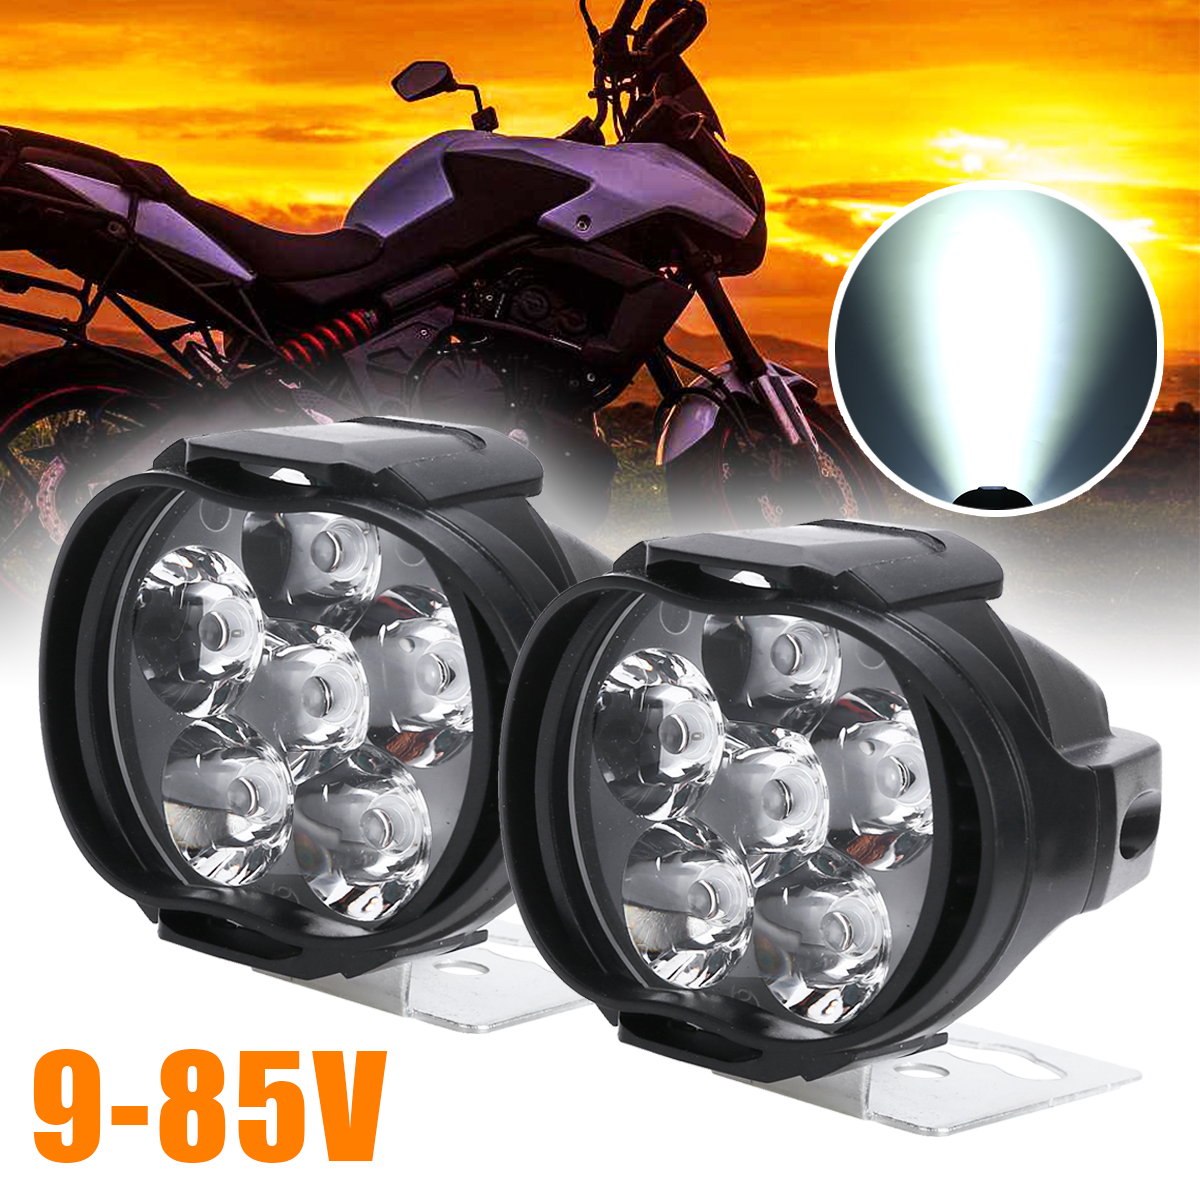 Universal 2pcs Motorcycle Headlight Scooter Fog Spot Light LED Motorbike ATV Moto Working Head Lamp White DRL Car Headlamp